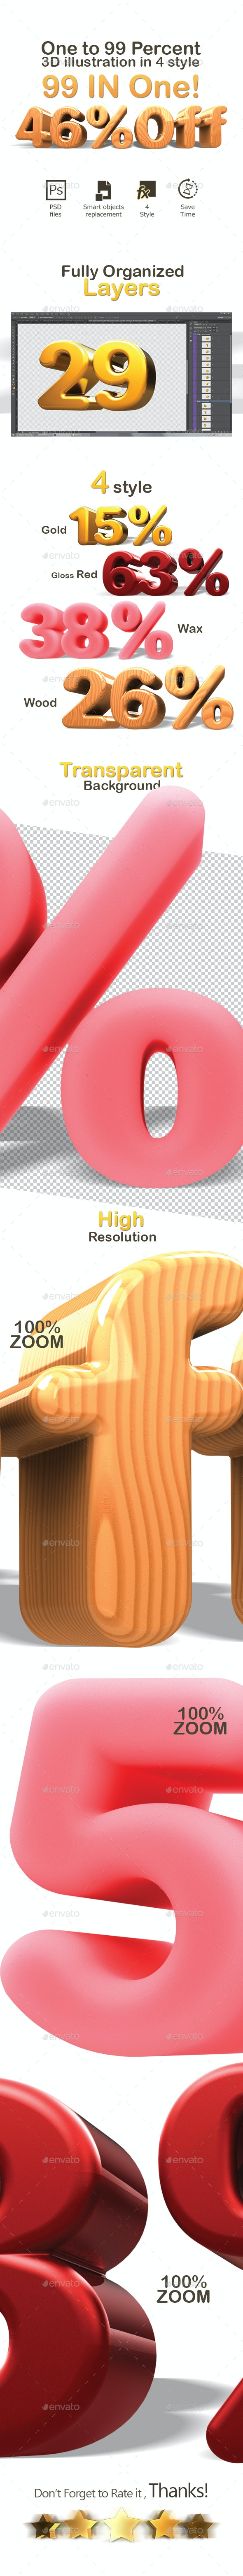 one to 99 percent 3D illustration - 3D Renders Graphics